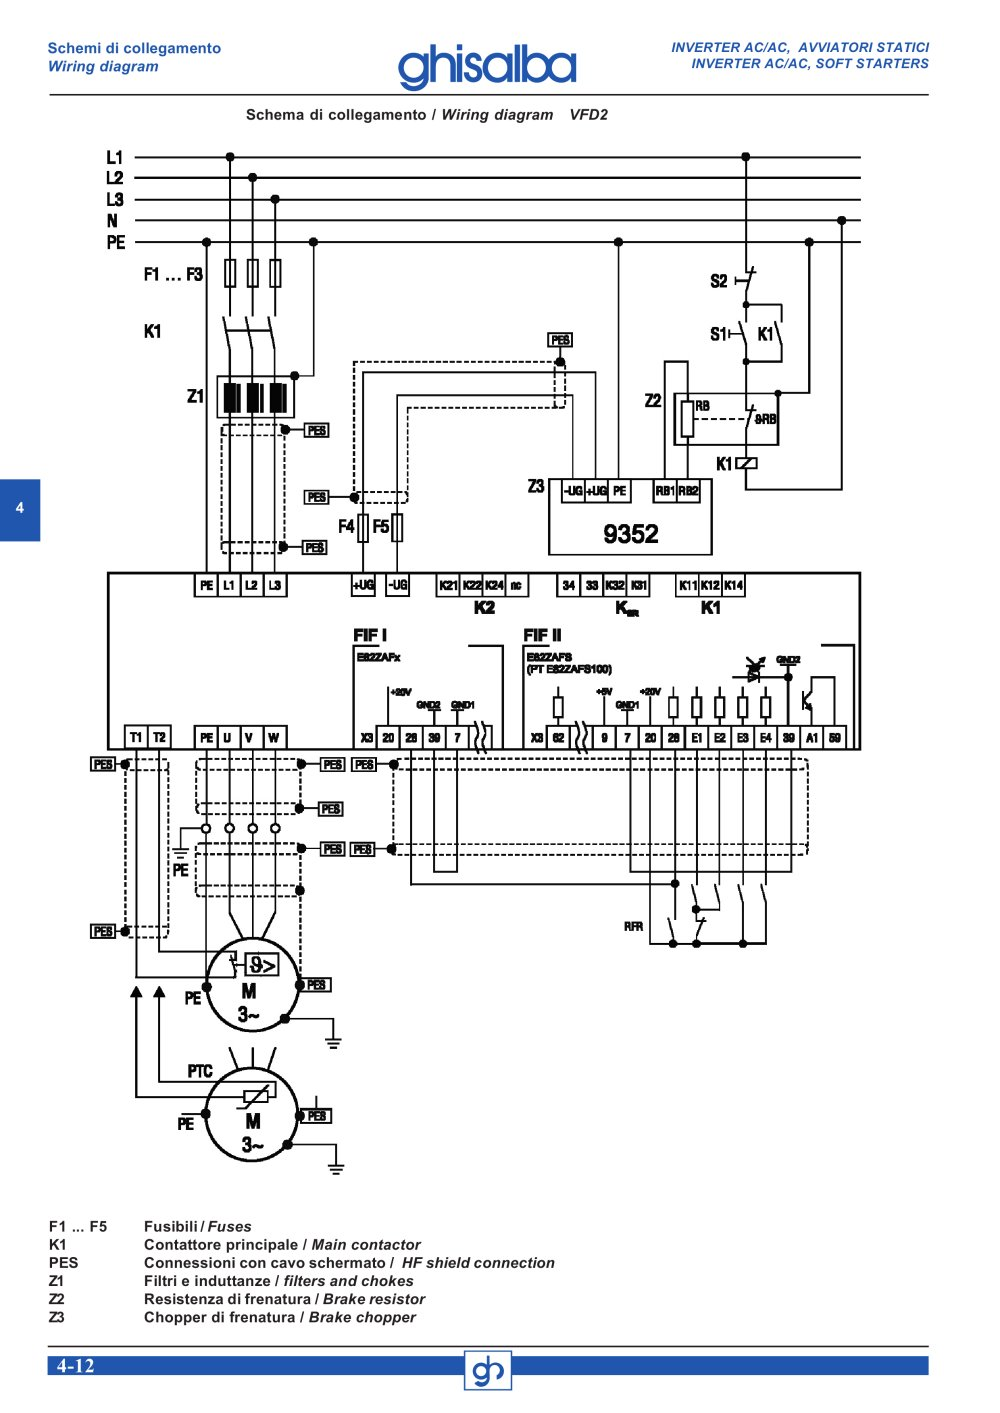 inverter soft starters 135447_10b?resized665%2C940 abb soft starter circuit diagram efcaviation com soft starter wiring diagram schneider at n-0.co